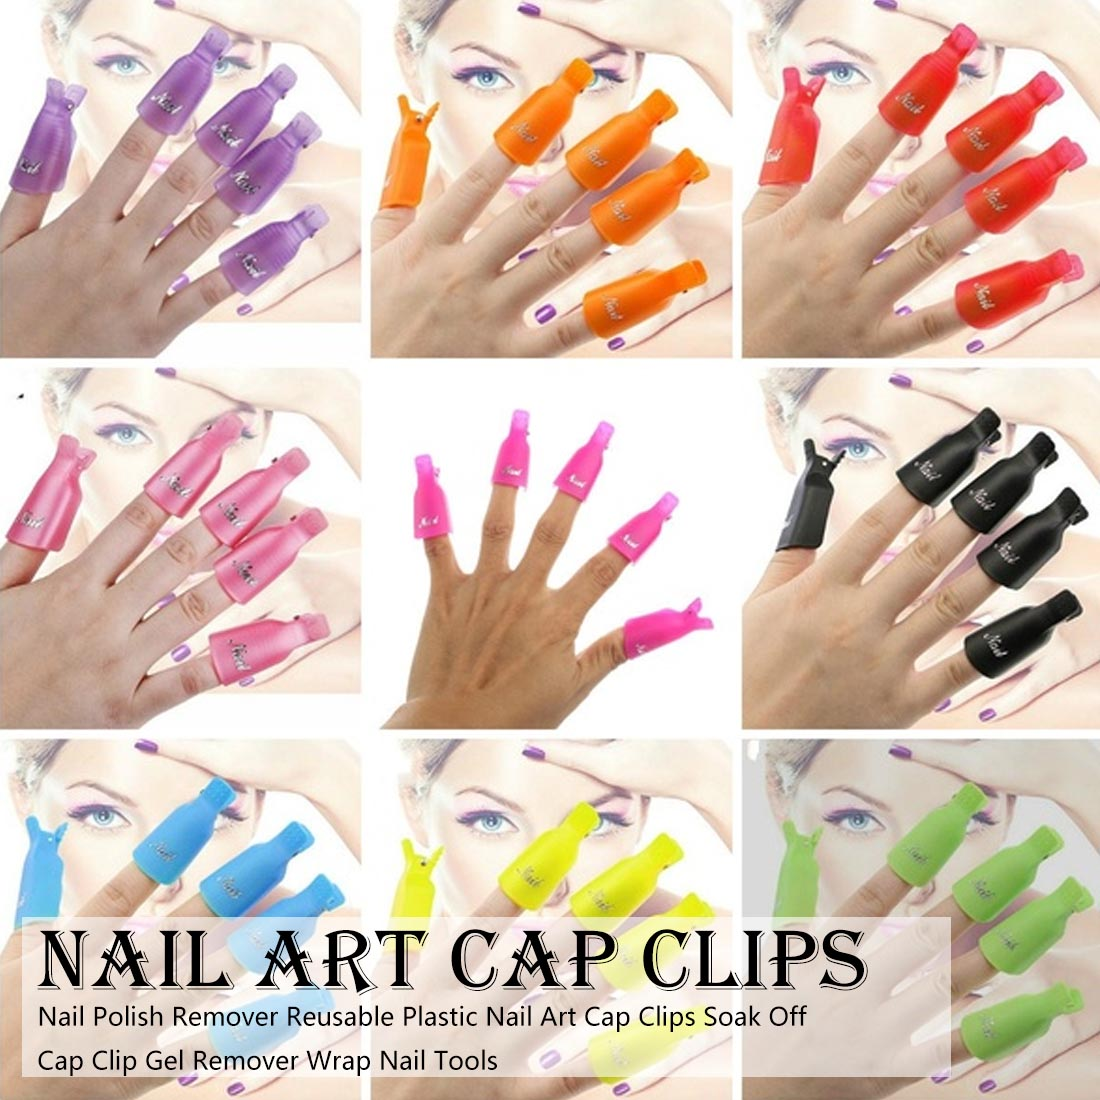 Image 3 - 10pcs UV Gel Remover Cap Clips for Gel Varnish Degreaser for Nails Manicure Clamps Plastic Acrylic Nail Art Soak Off Clip Cap-in Nail Polish Remover from Beauty & Health